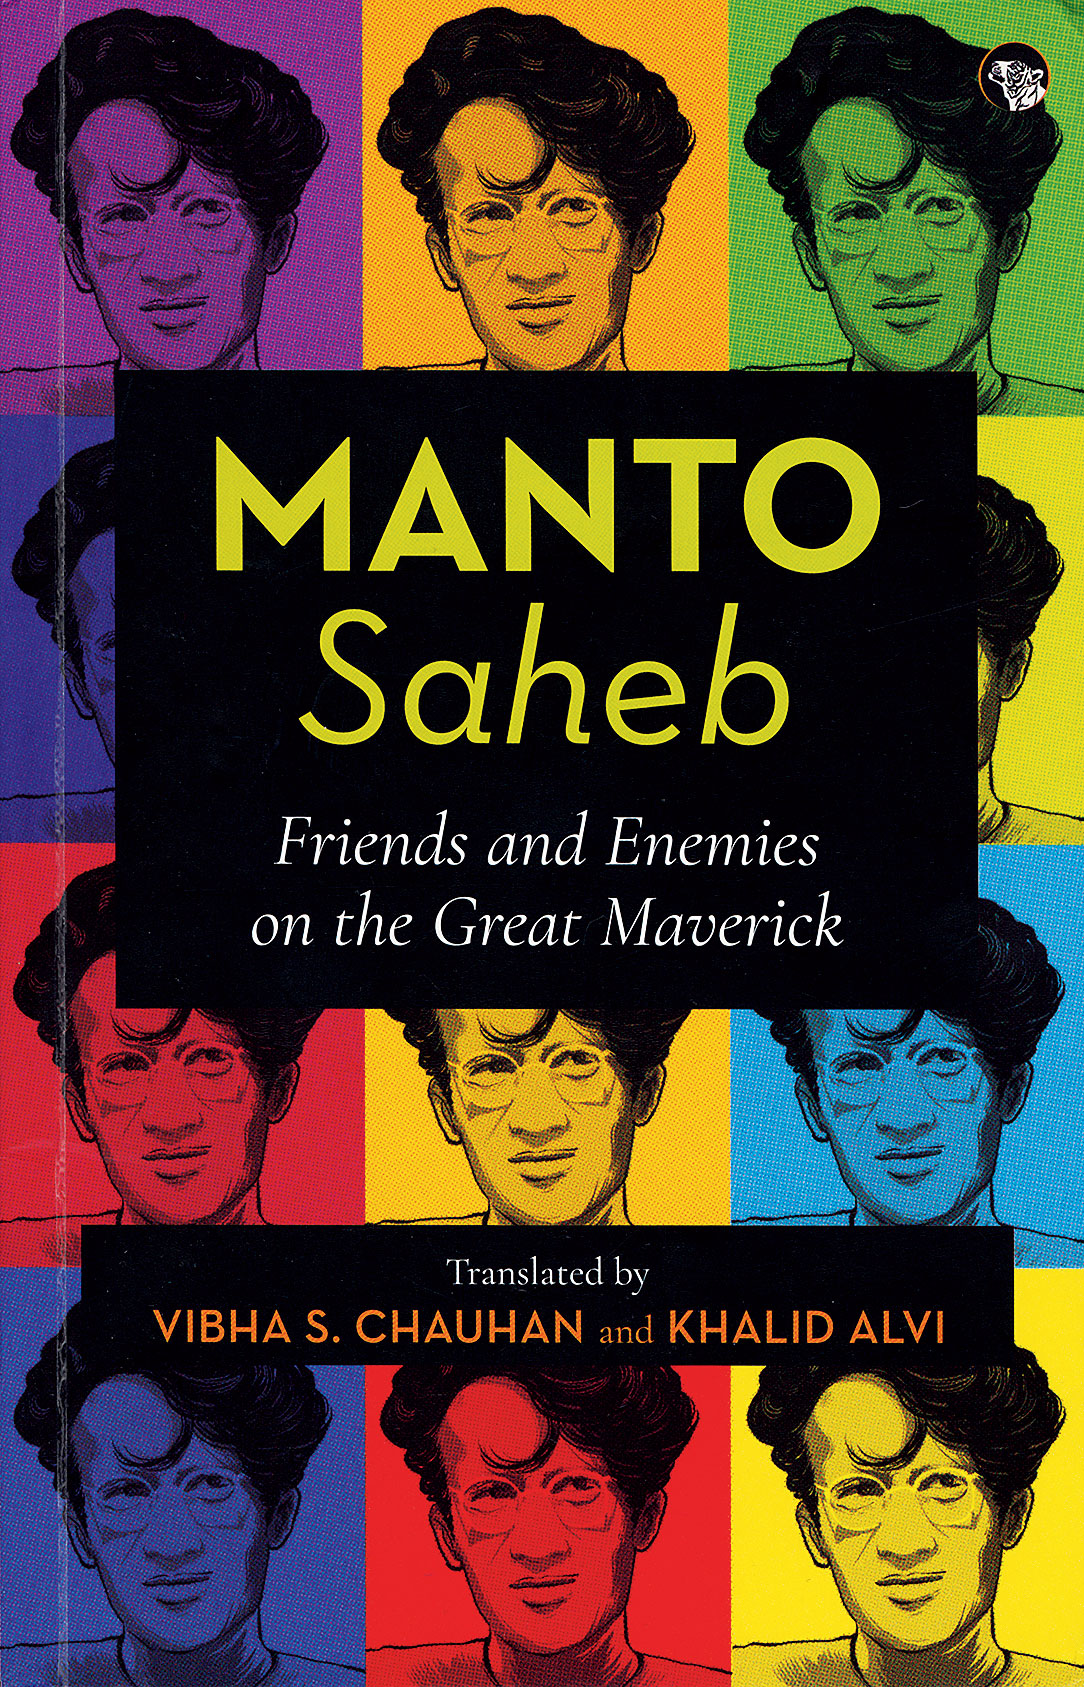 Cover of the book, Manto Saheb: Friends and Enemies on the Great Maverick